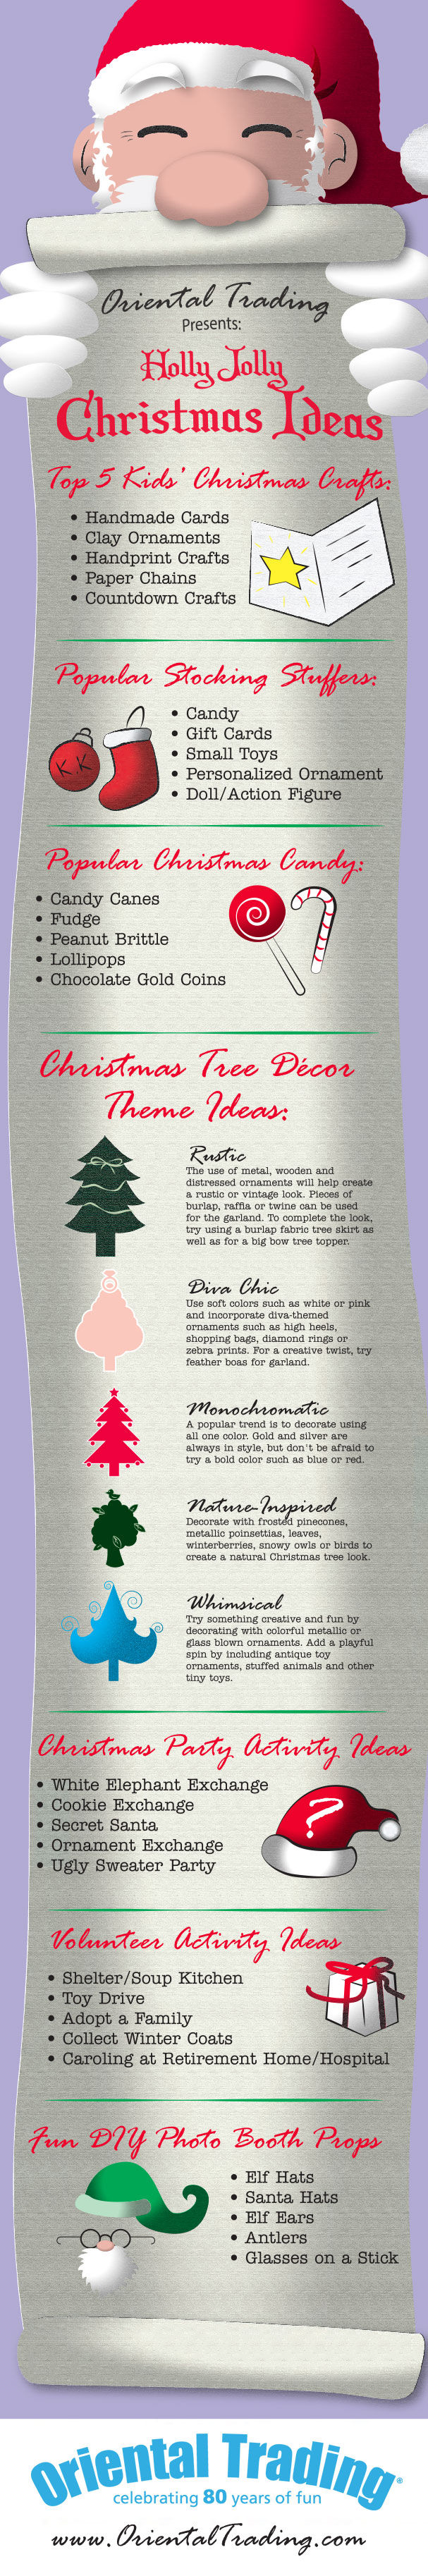 Popular Christmas Trends and Party Ideas